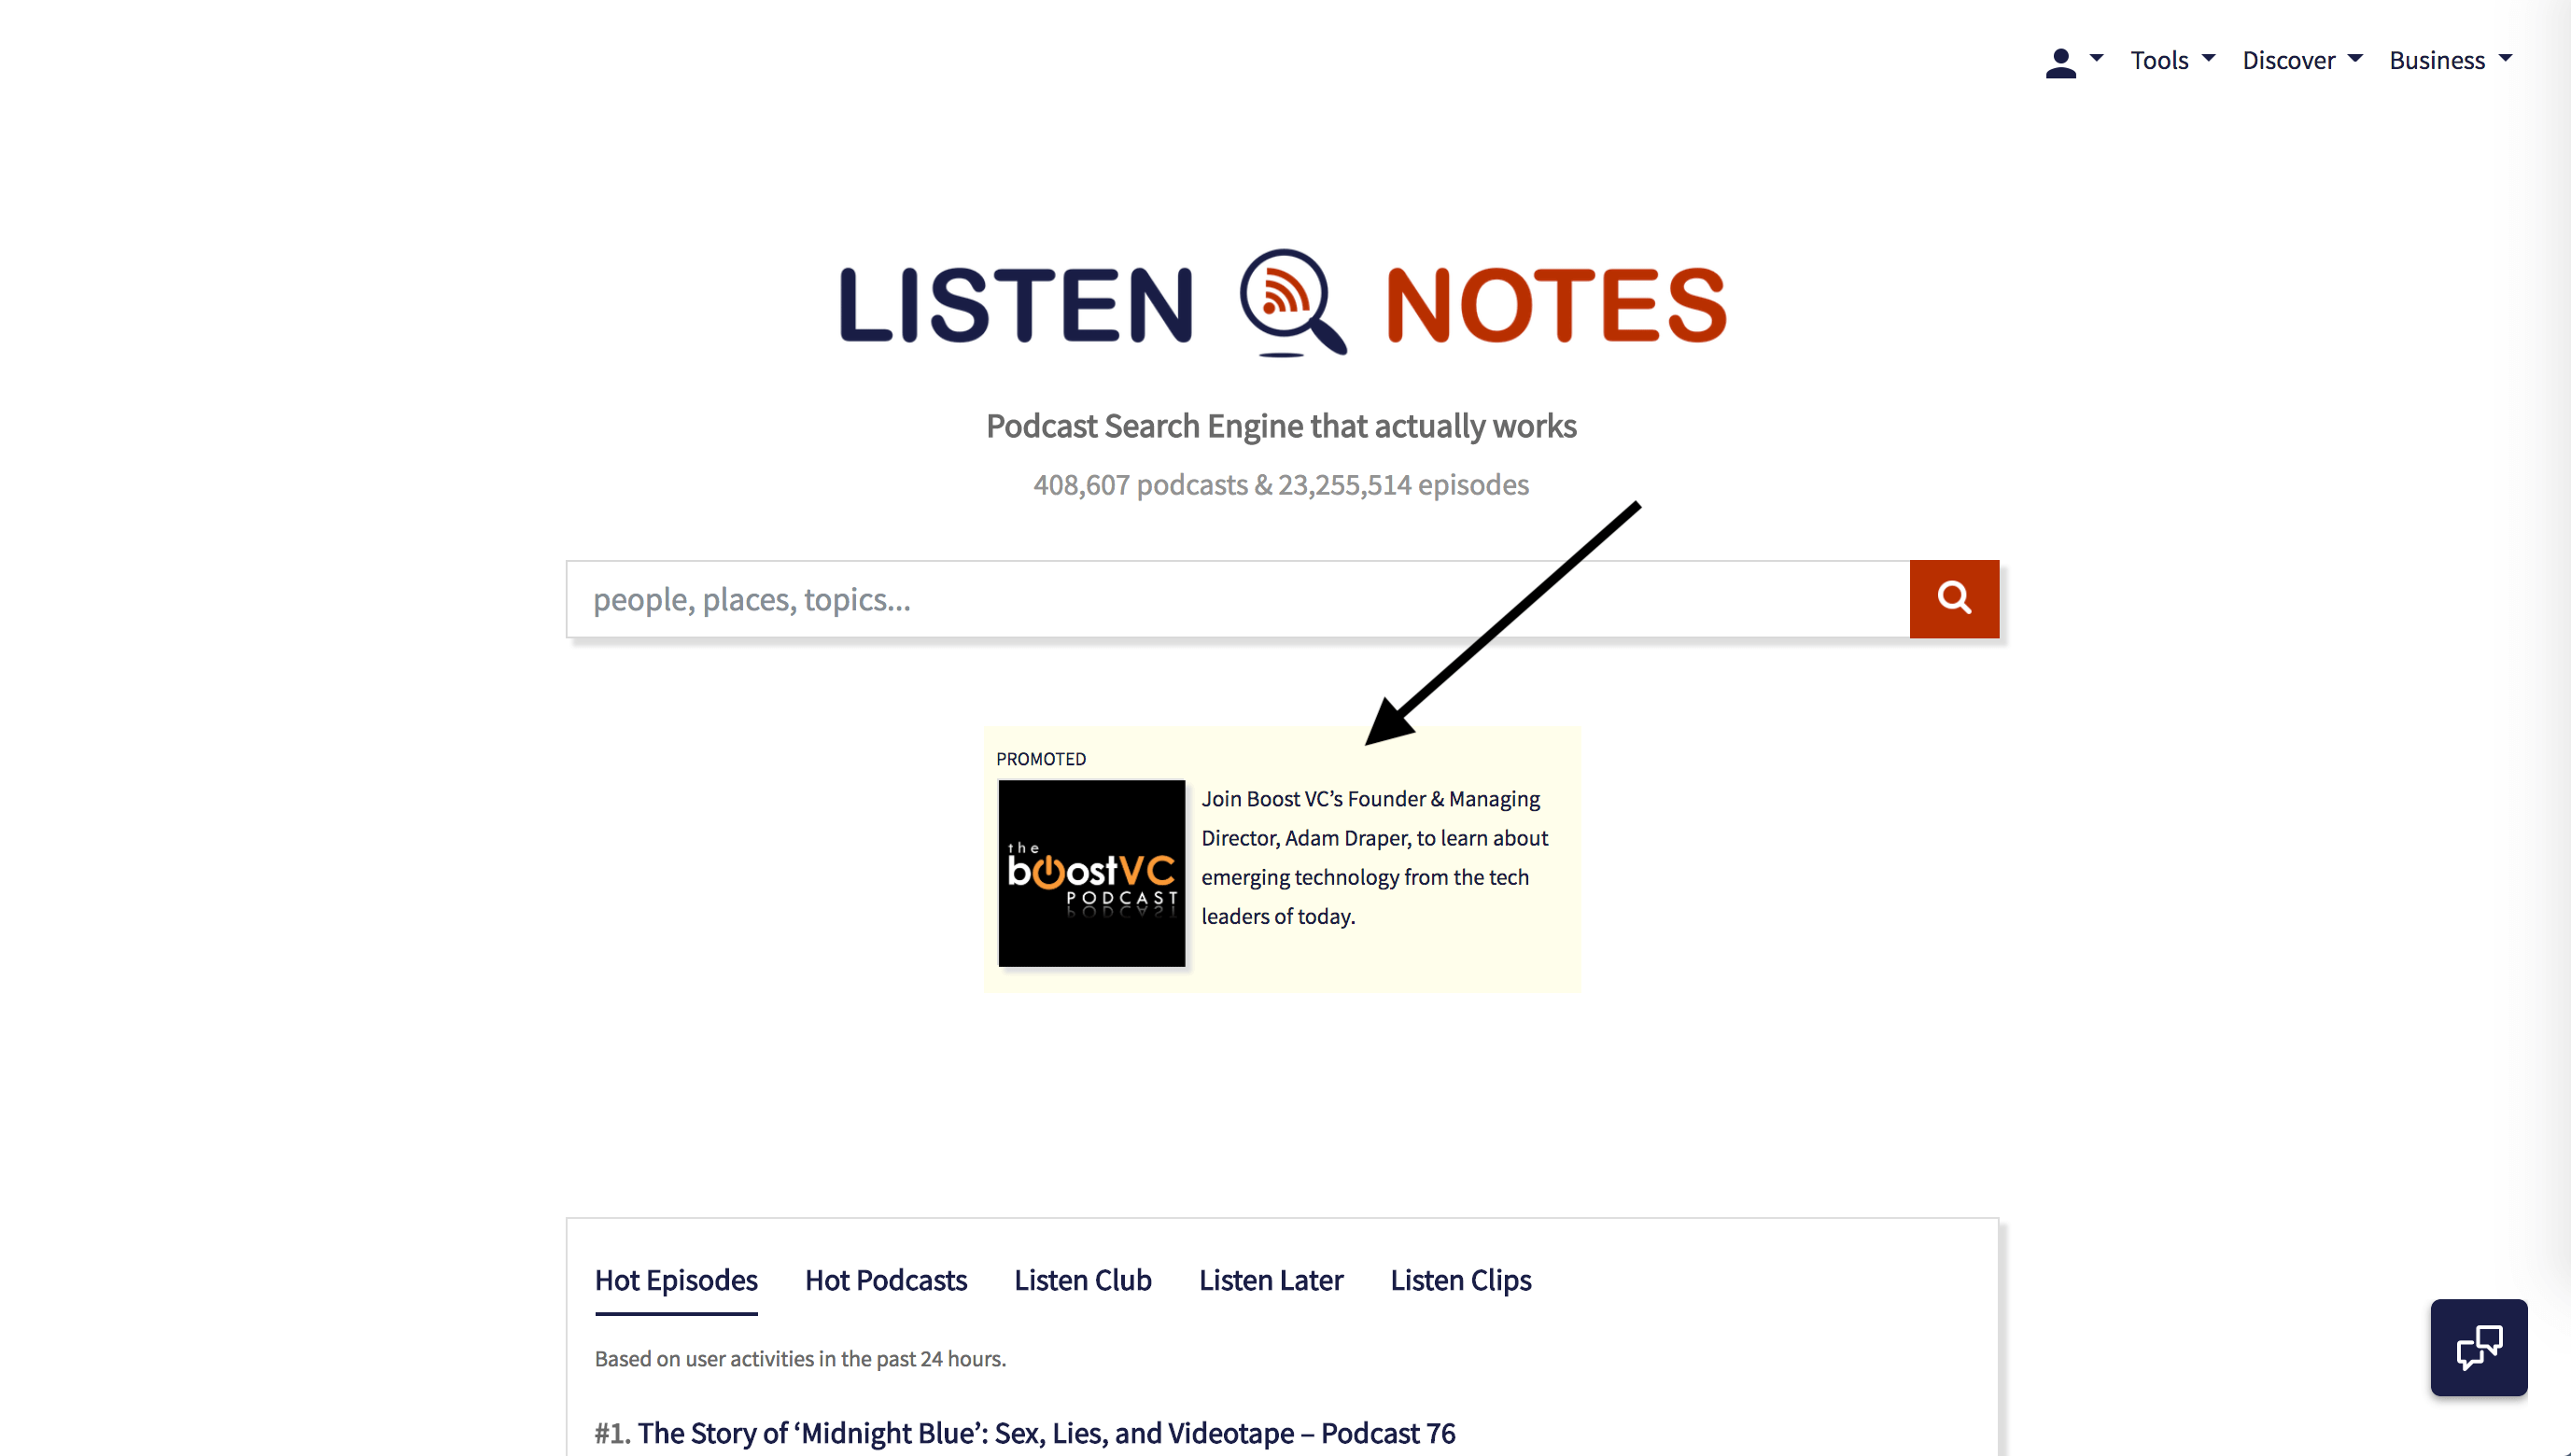 Listen Notes Homepage Banner Ads